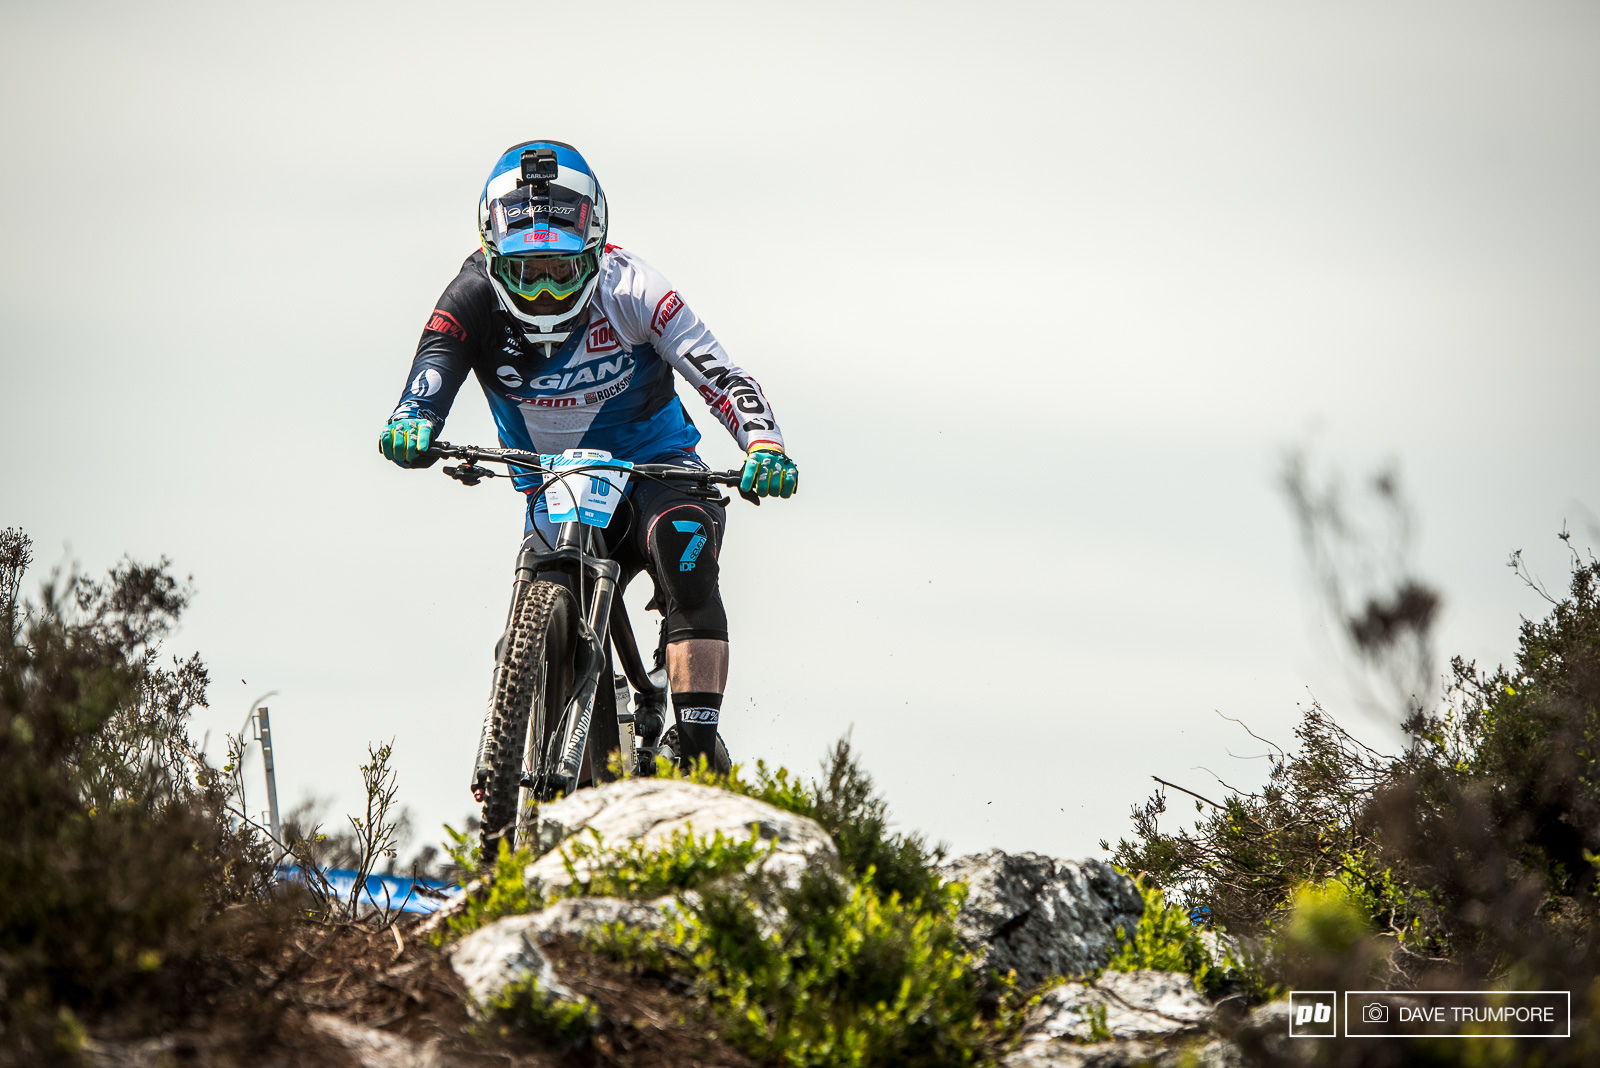 Josh Carlson loves the tracks here in Ireland and can t wait to race in front of all the wild fans tomorrow.